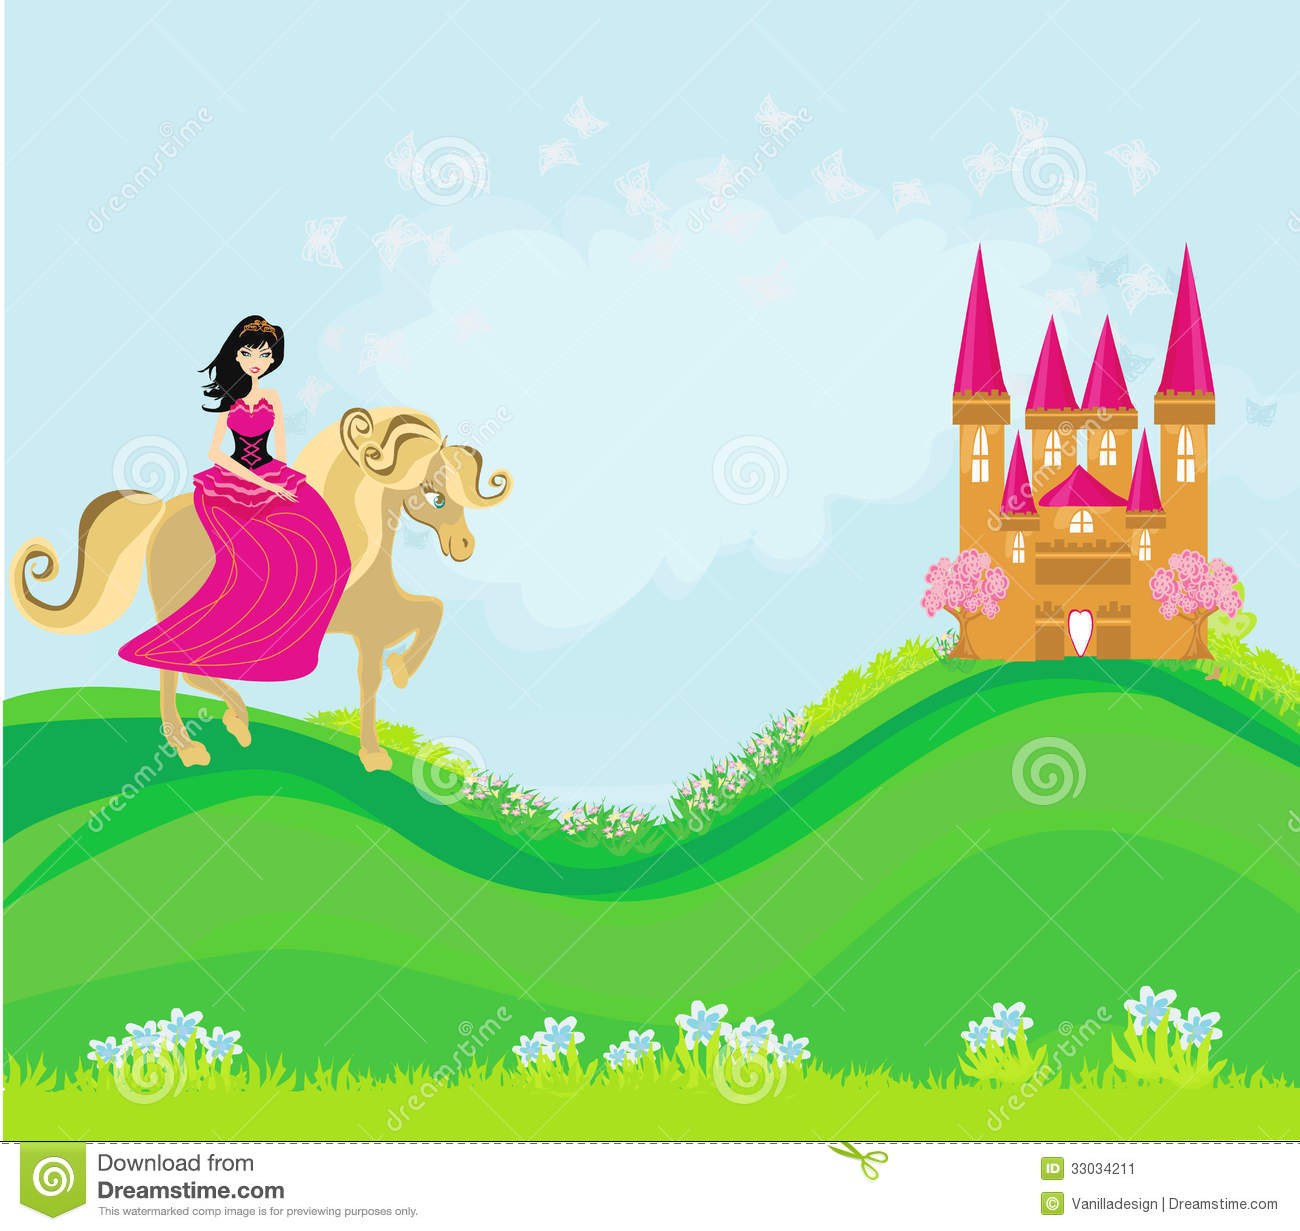 Fairy Tale Invitation with good invitations layout